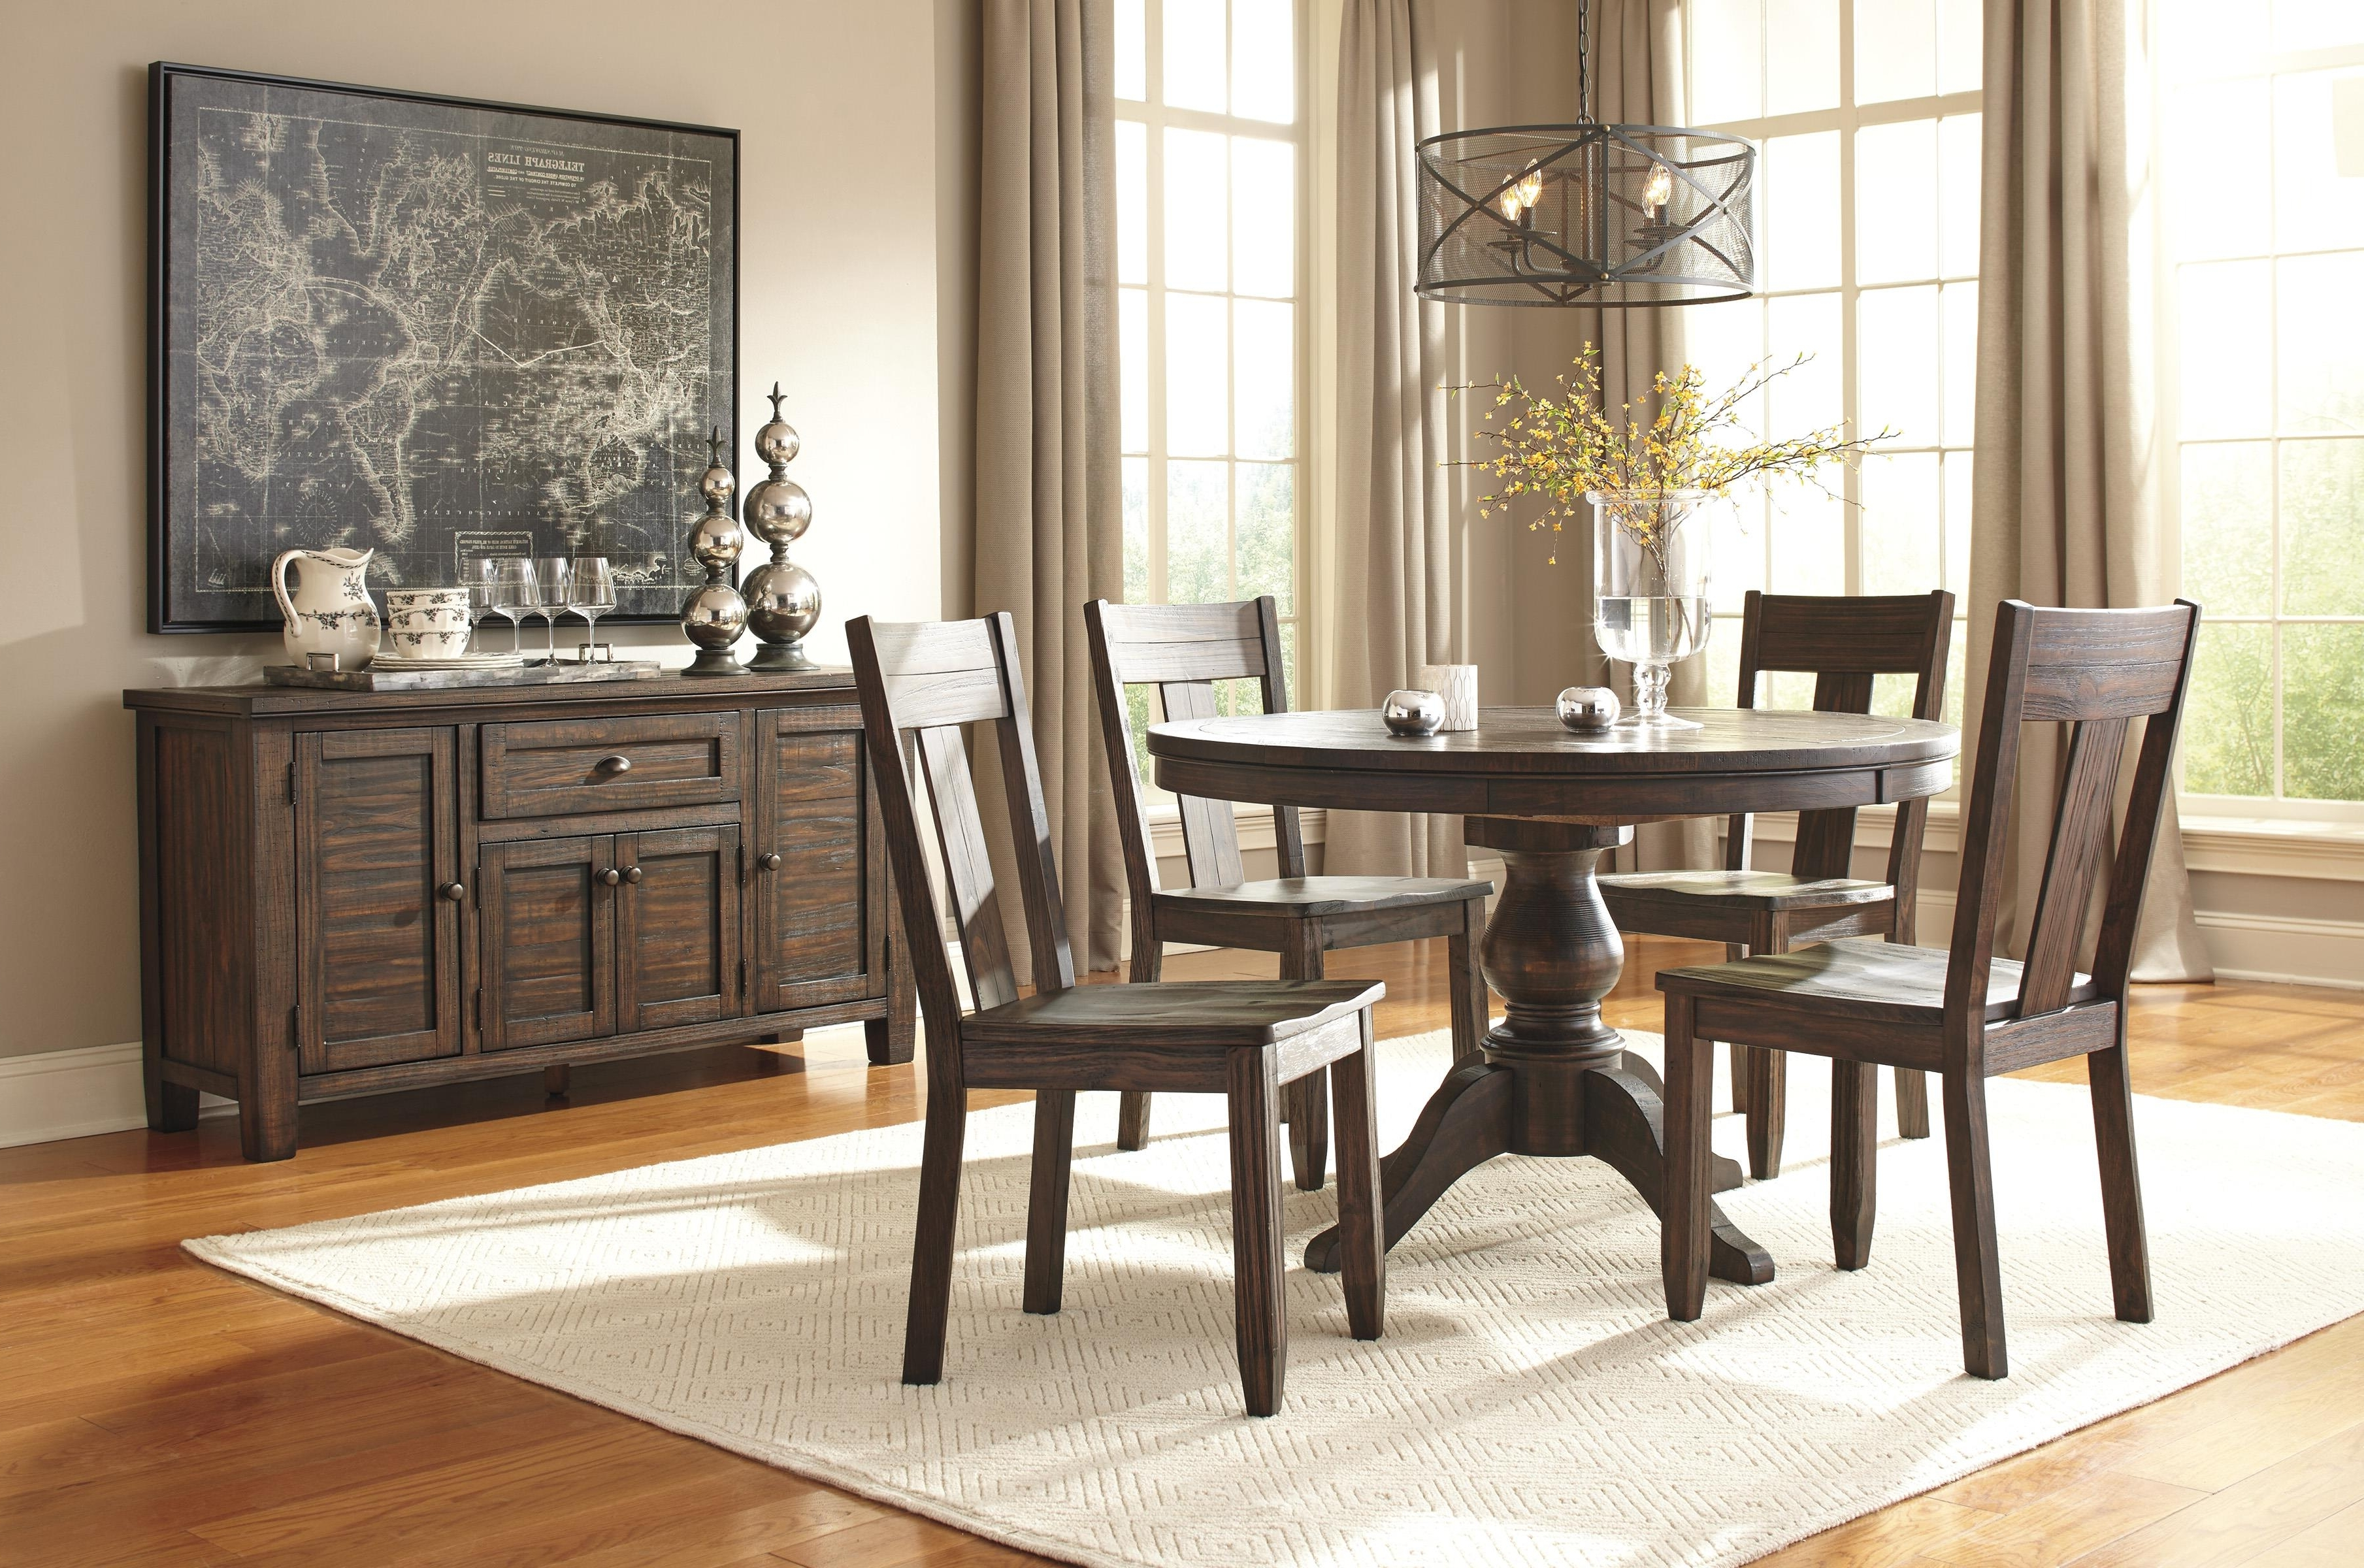 Jaxon 5 Piece Extension Round Dining Sets With Wood Chairs Intended For Most Up To Date Signature Designashley Trudell Round Dining Room Pedestal (View 7 of 25)